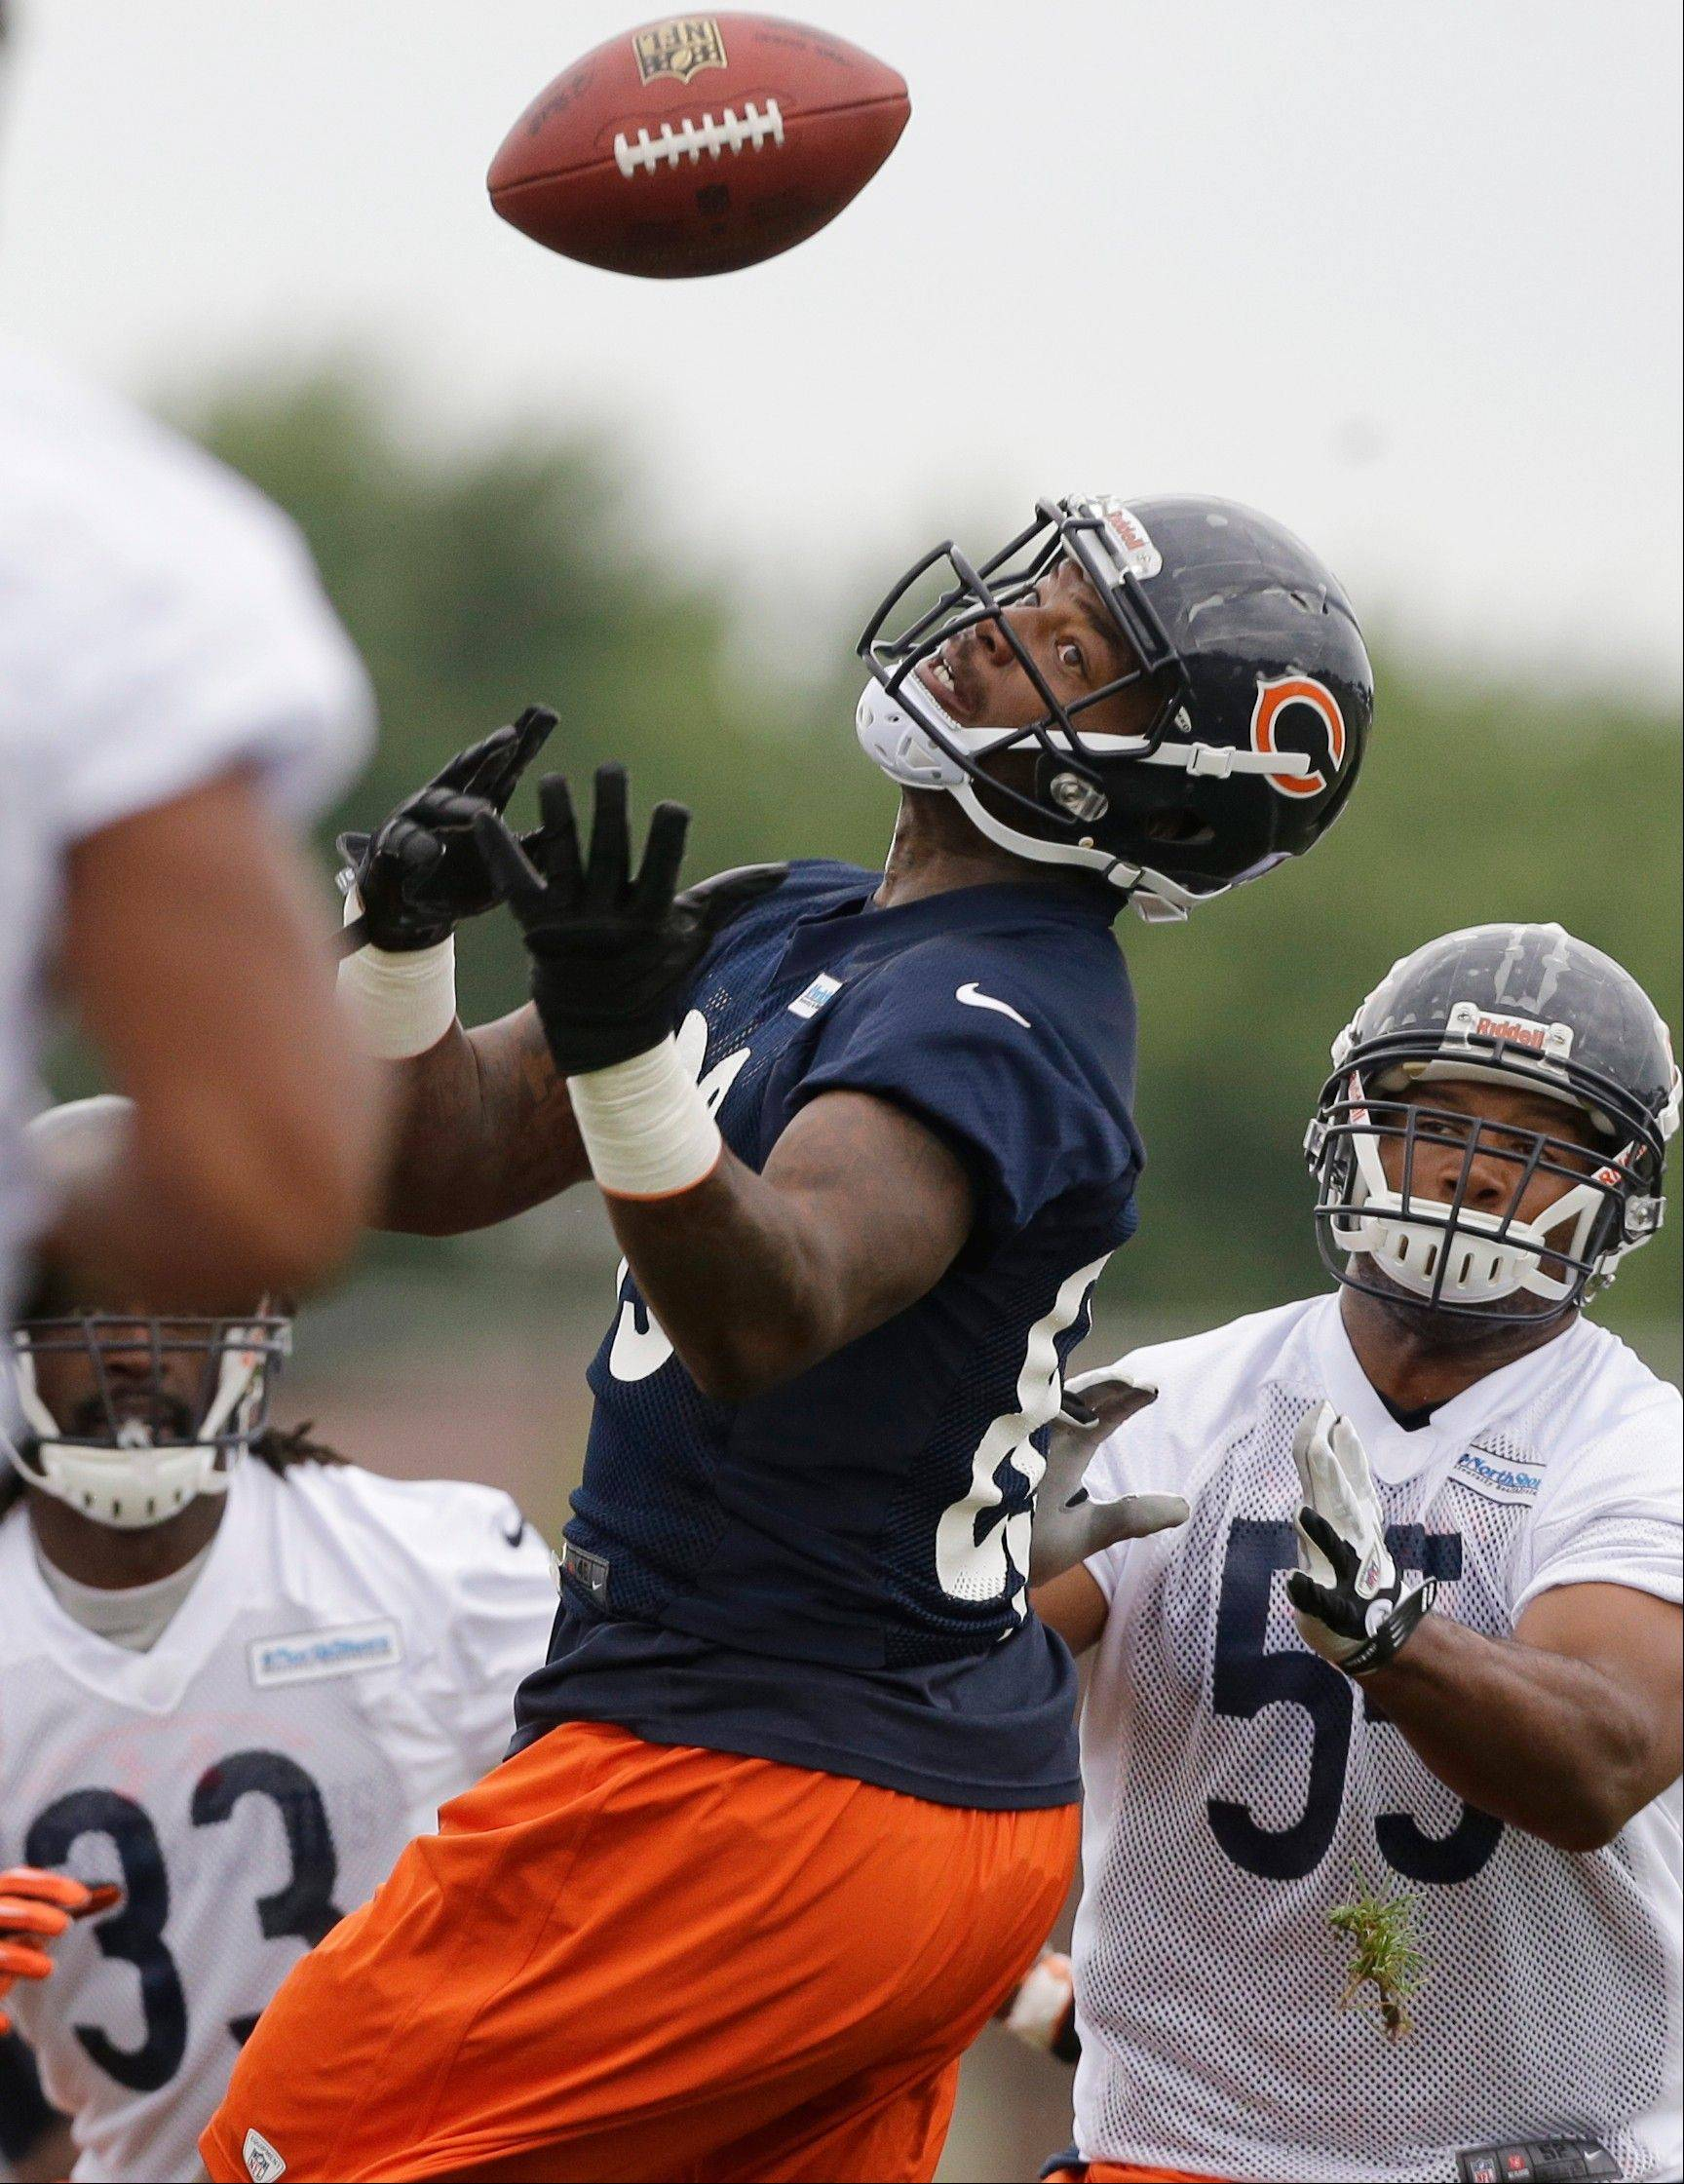 "Bears tight end Martellus Bennett describes how he lets quarterback Jay Cutler know that Bennett is open. ""He sees me. I wear white gloves, so he can see the white gloves when I wave them like Mickey Mouse. I'm clapping every time I'm open. I do enough of that to let him know I'm open before I have to tell him."""